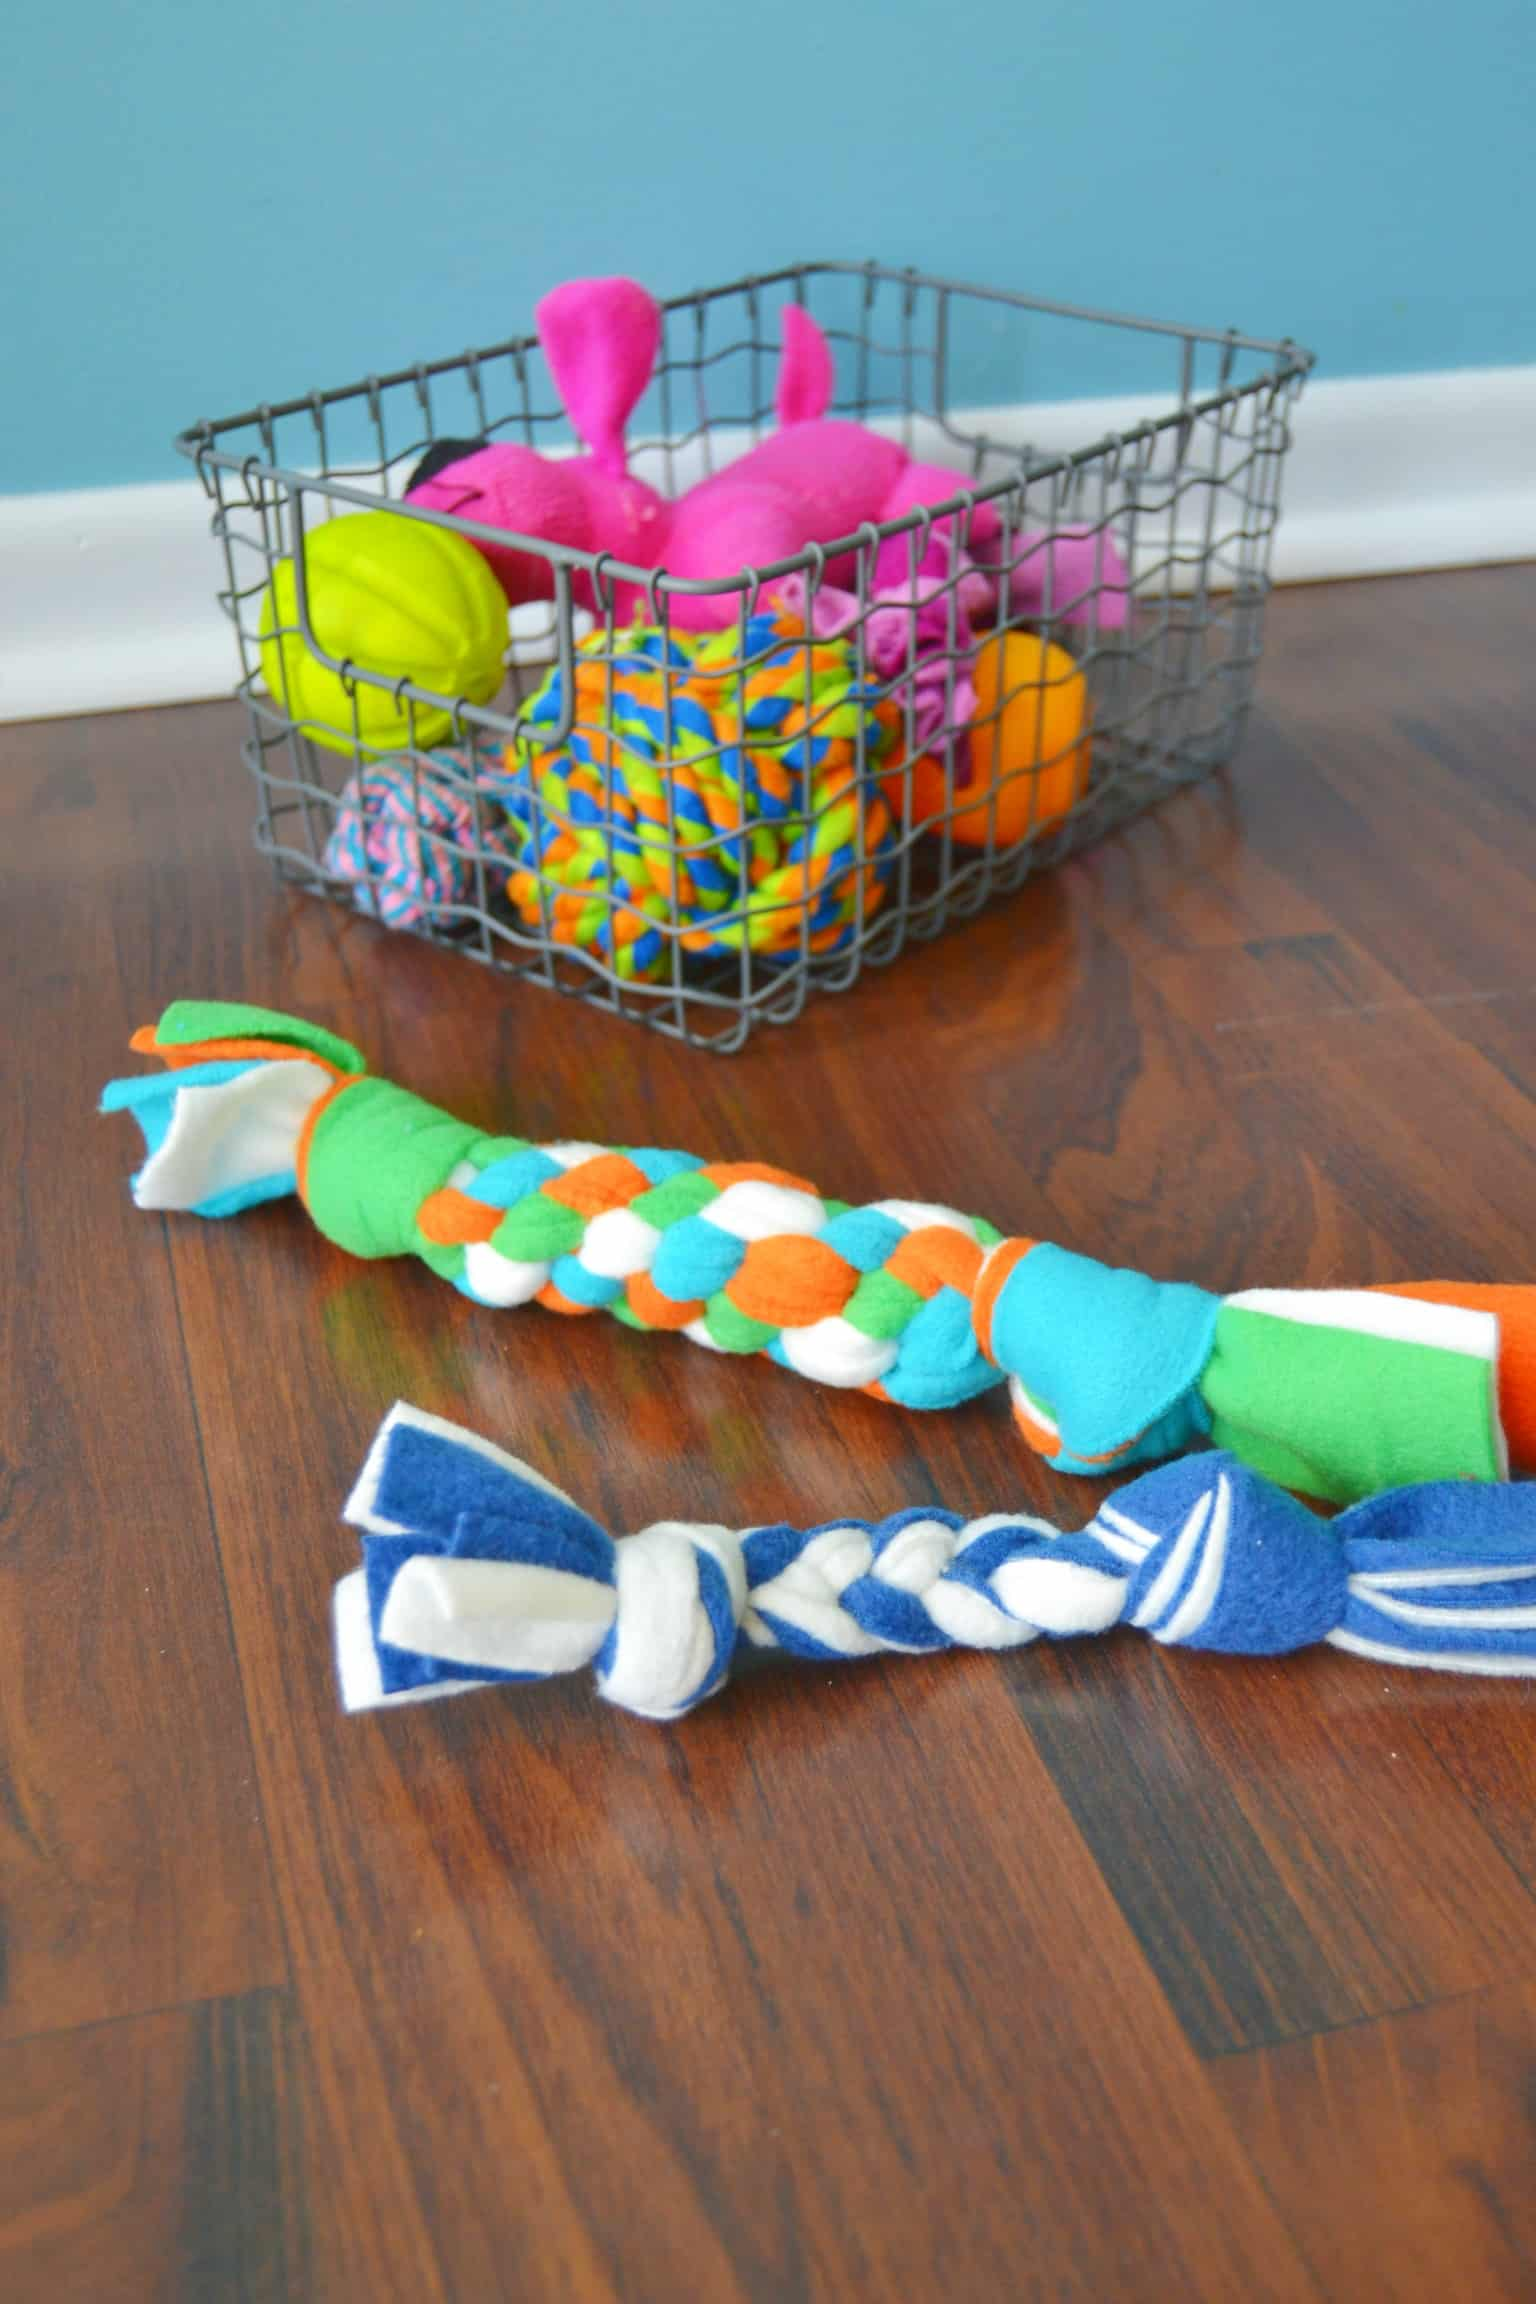 diy fleece dog toys in front of a basket of other dog toys